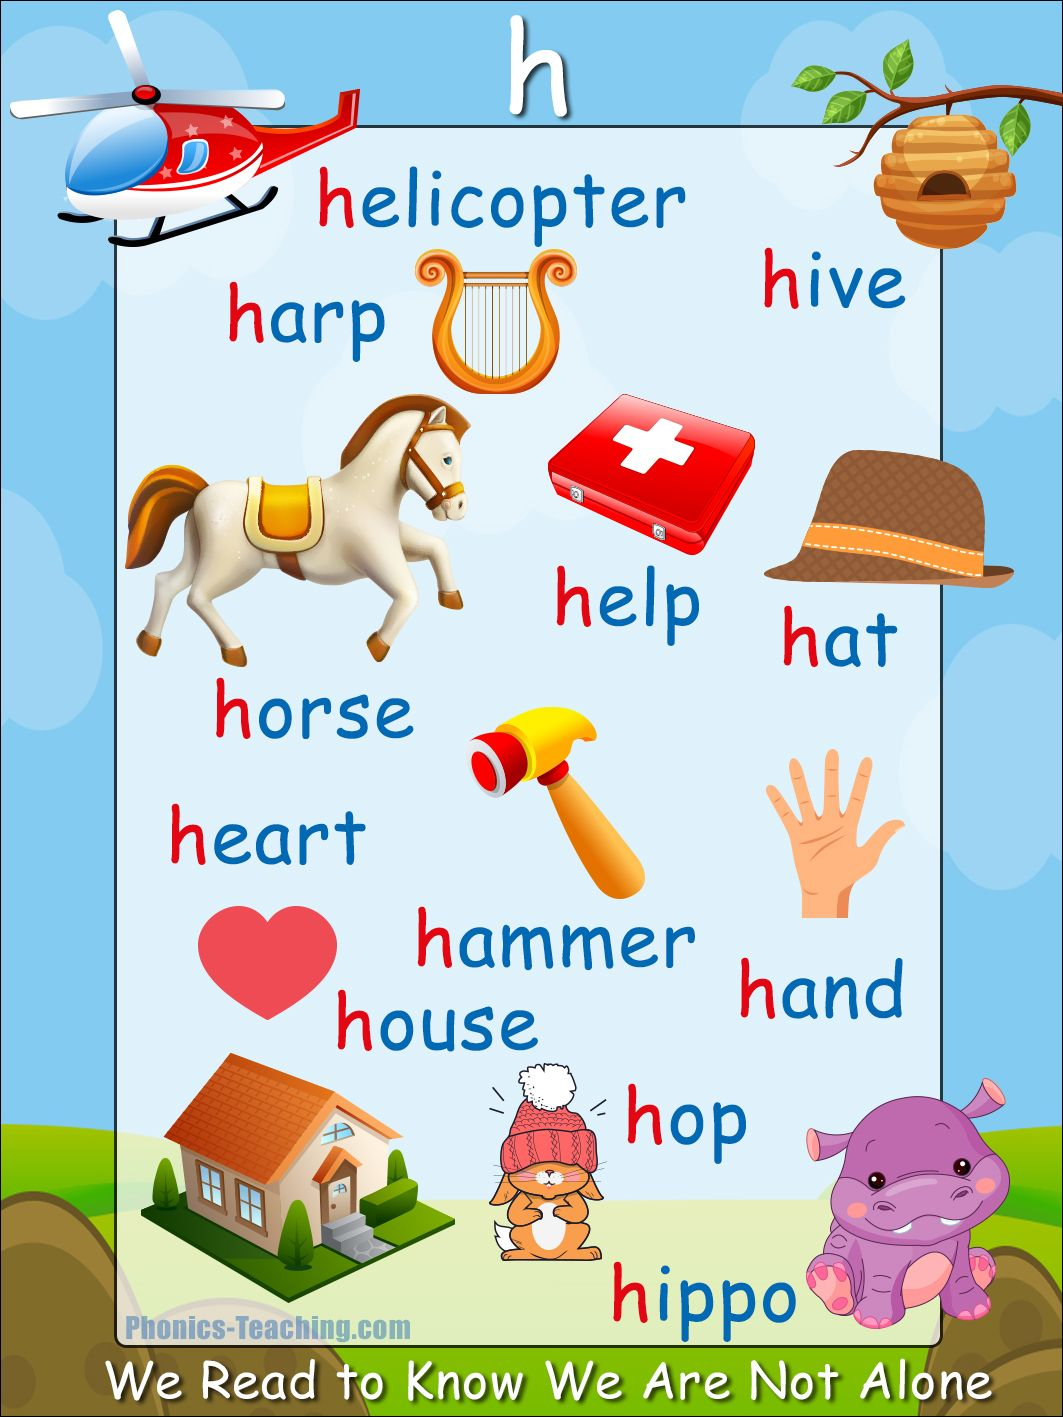 'h' words phonics poster Free Download! Phonics